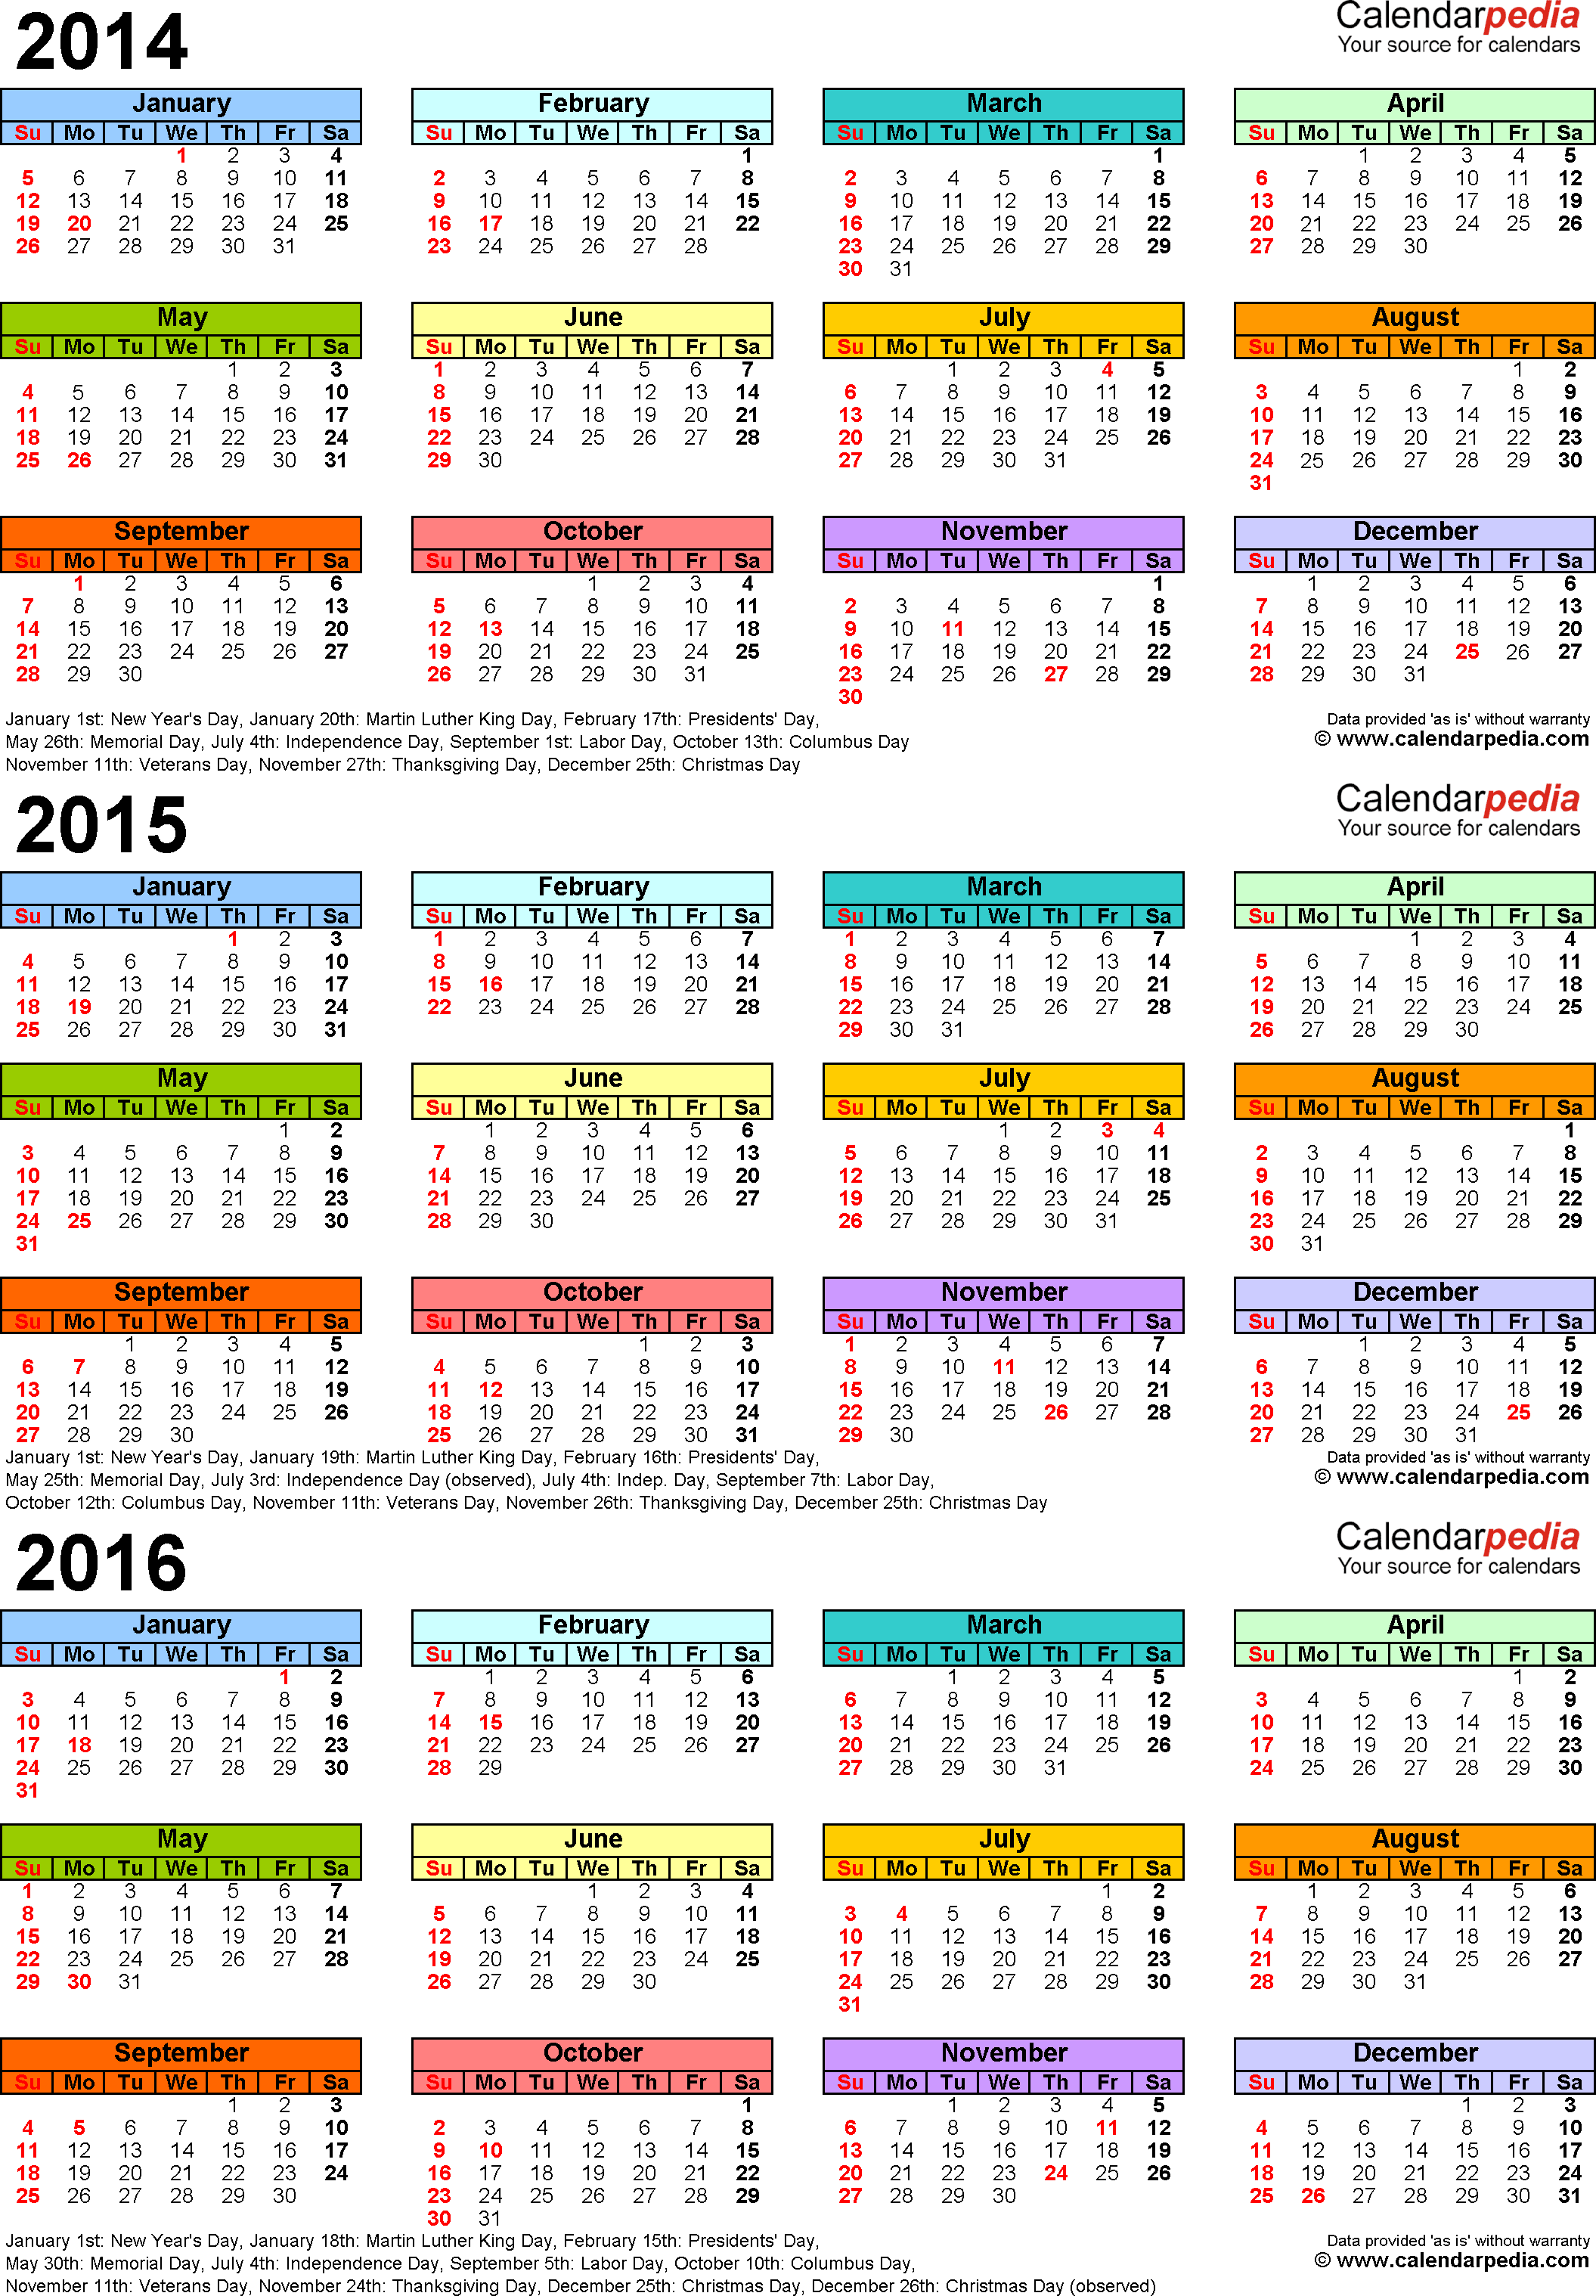 Template 3: PDF template for three year calendar 2014-2016 (portrait orientation, 1 page, in color)